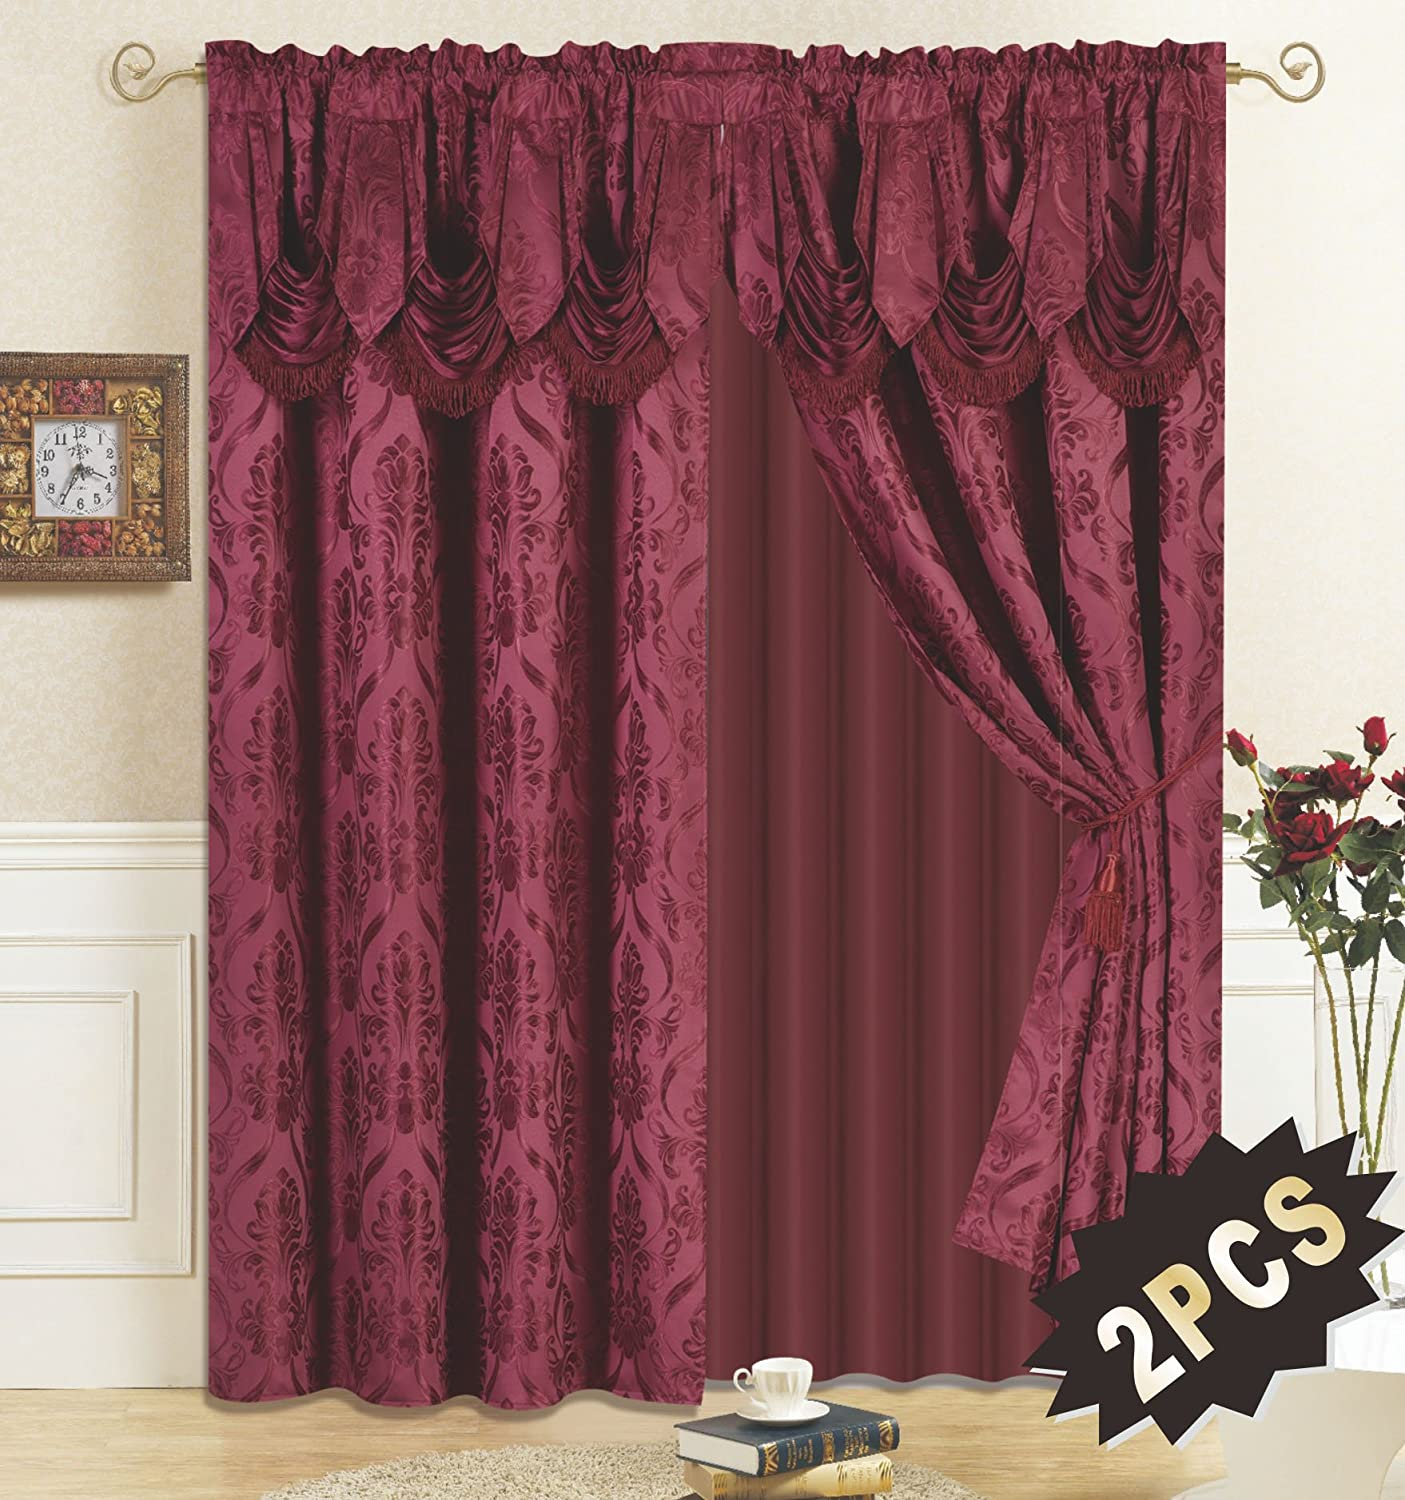 All American Collection New 4 Piece Drape Set Burgundy